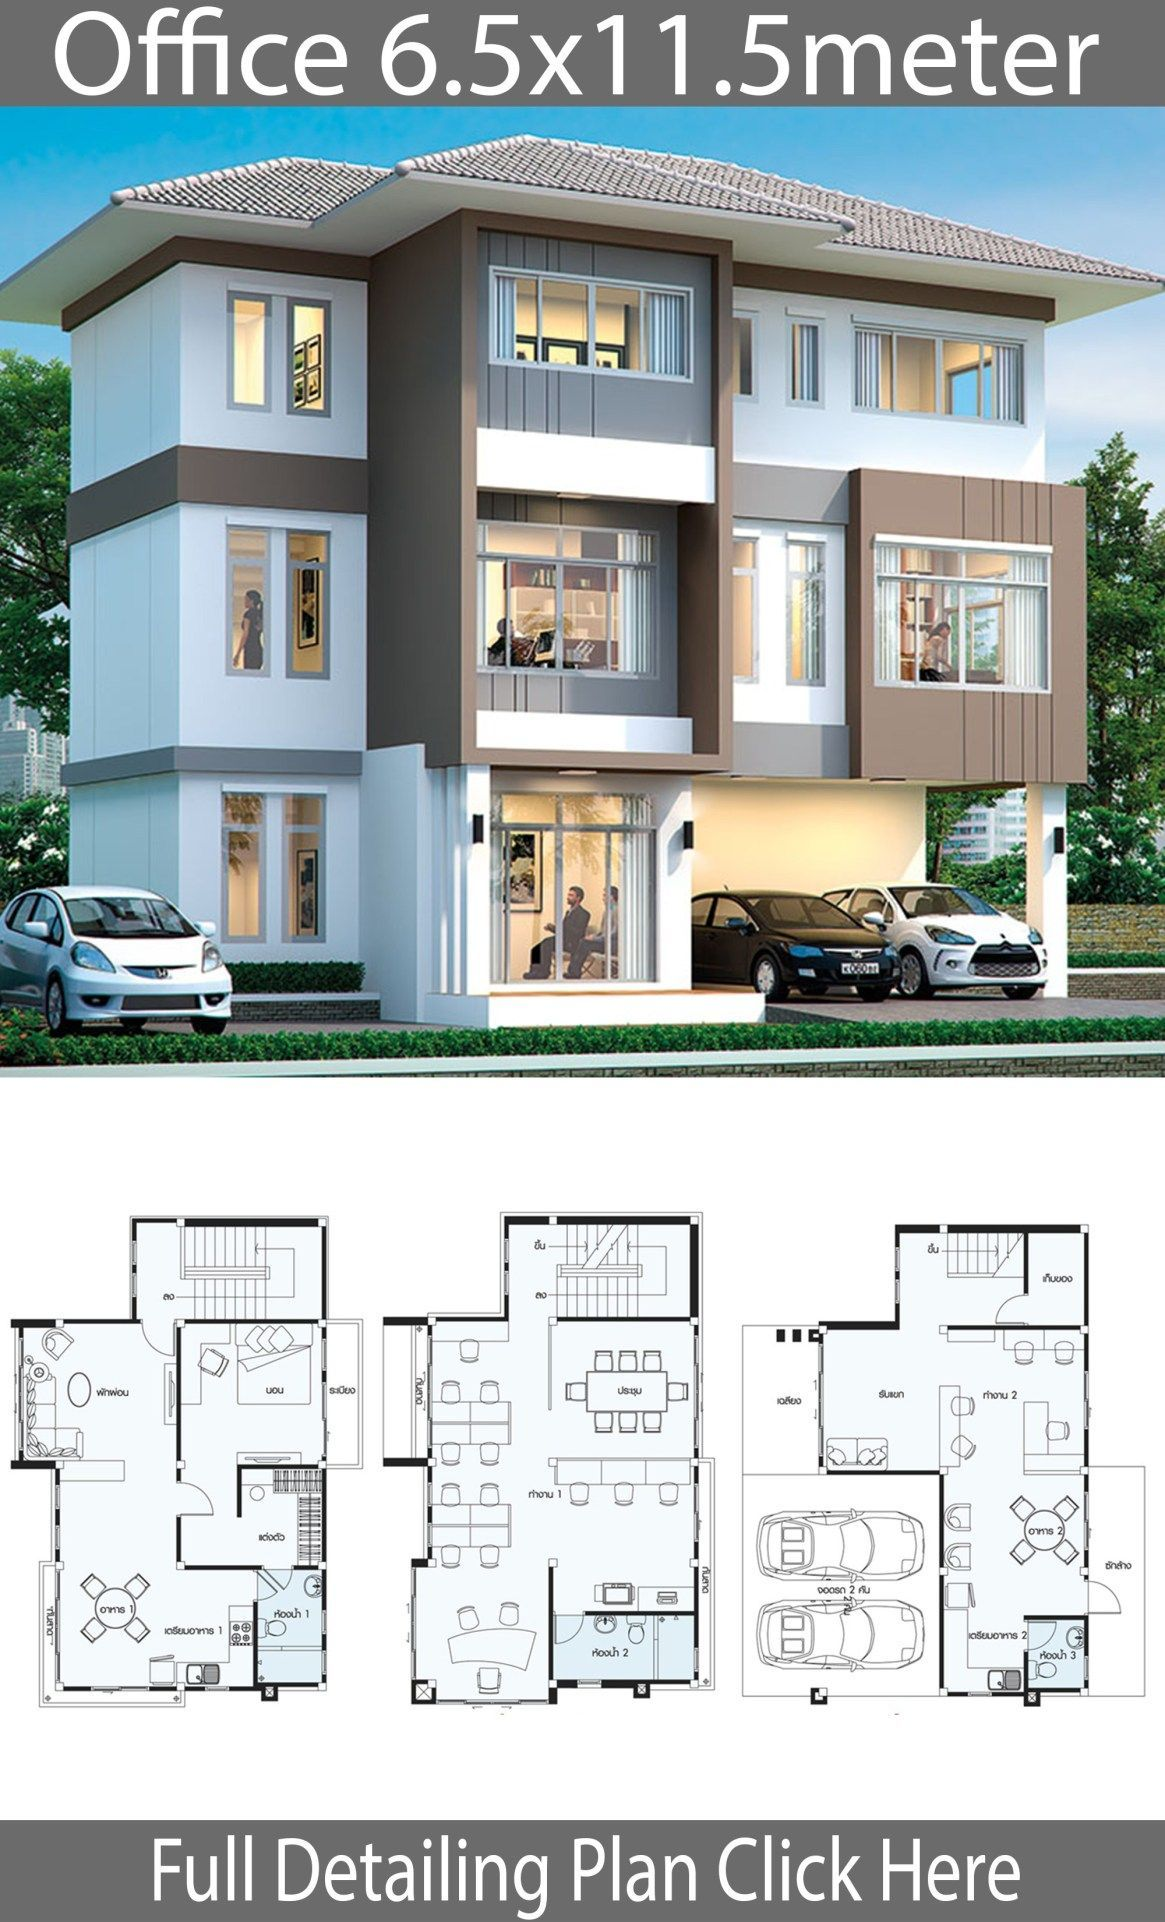 Plansearch Office Design House Plan Home With Xmoffice House Design Plan 6 5x11 5m Building Design Plan Building Plans House Architectural House Plans